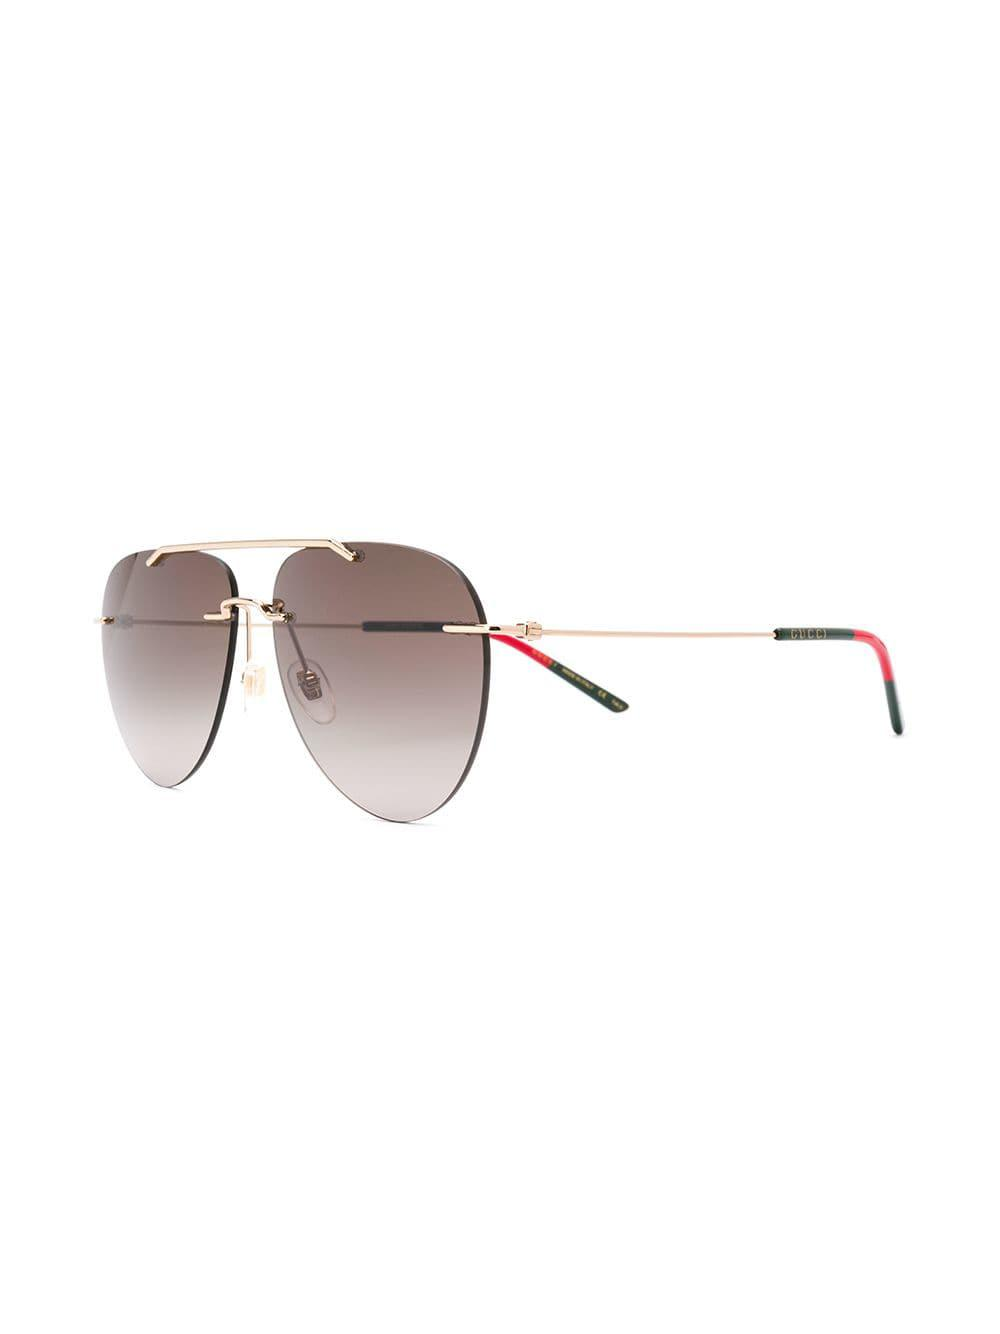 f3dfc6fc16be9 Gucci Aviator Style Sunglasses in Metallic for Men - Lyst